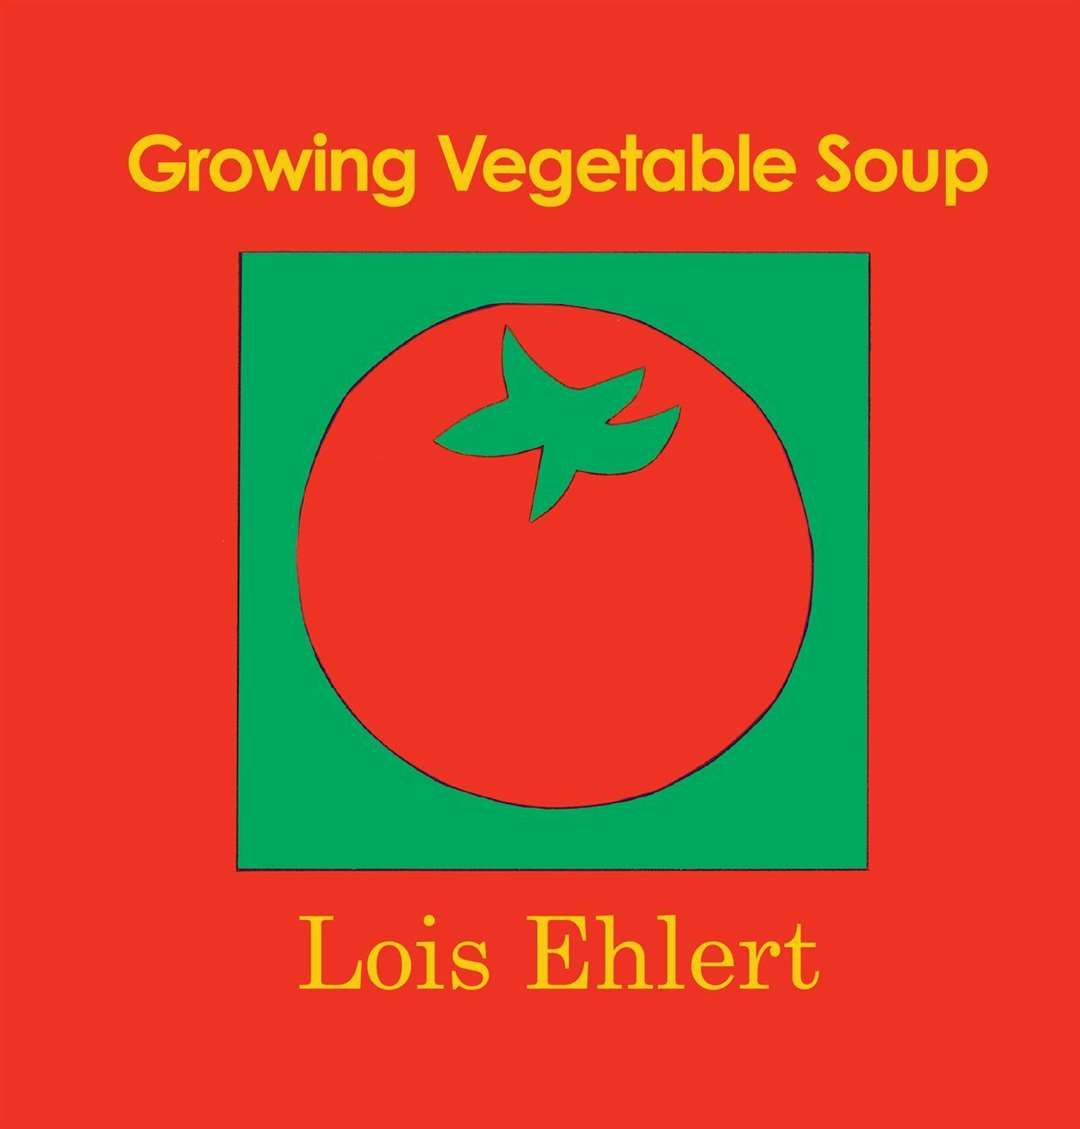 Growing Vegetable Soup by Lois Ehlert (46204136)